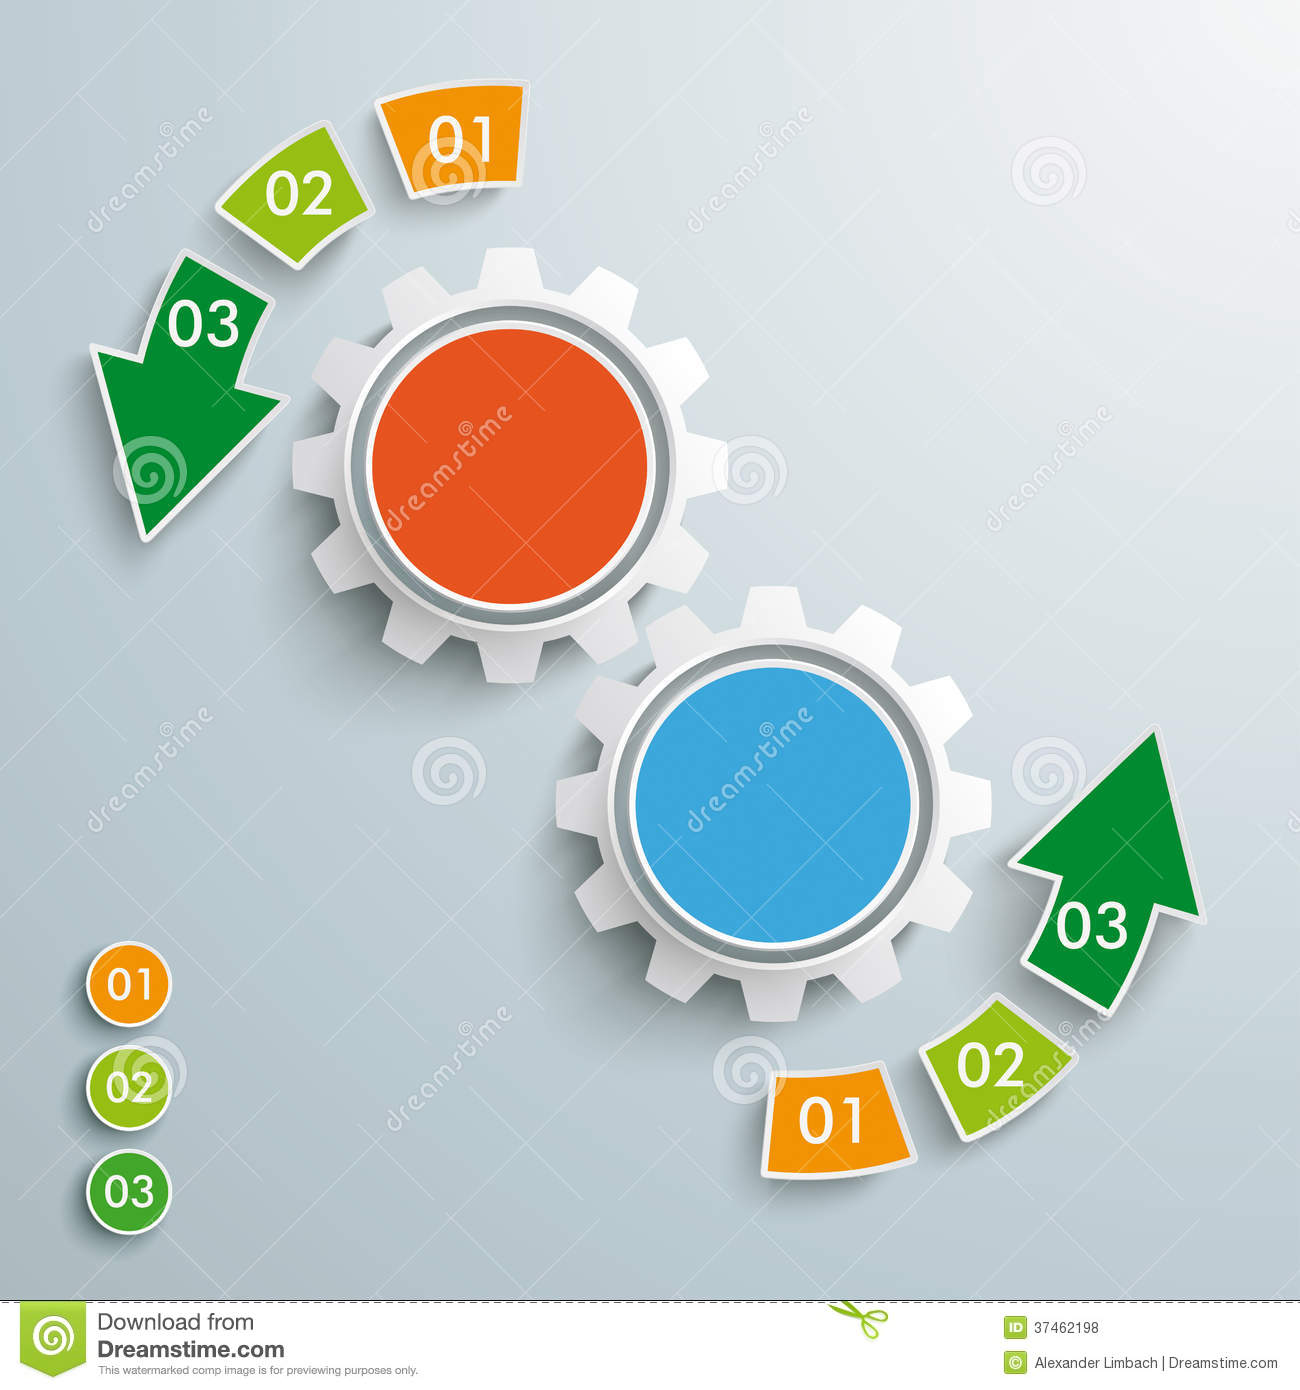 Infographic design on the grey background eps 10 vector file - Colored Success Arrow 6 Pieces 2 Gears Piad Royalty Free